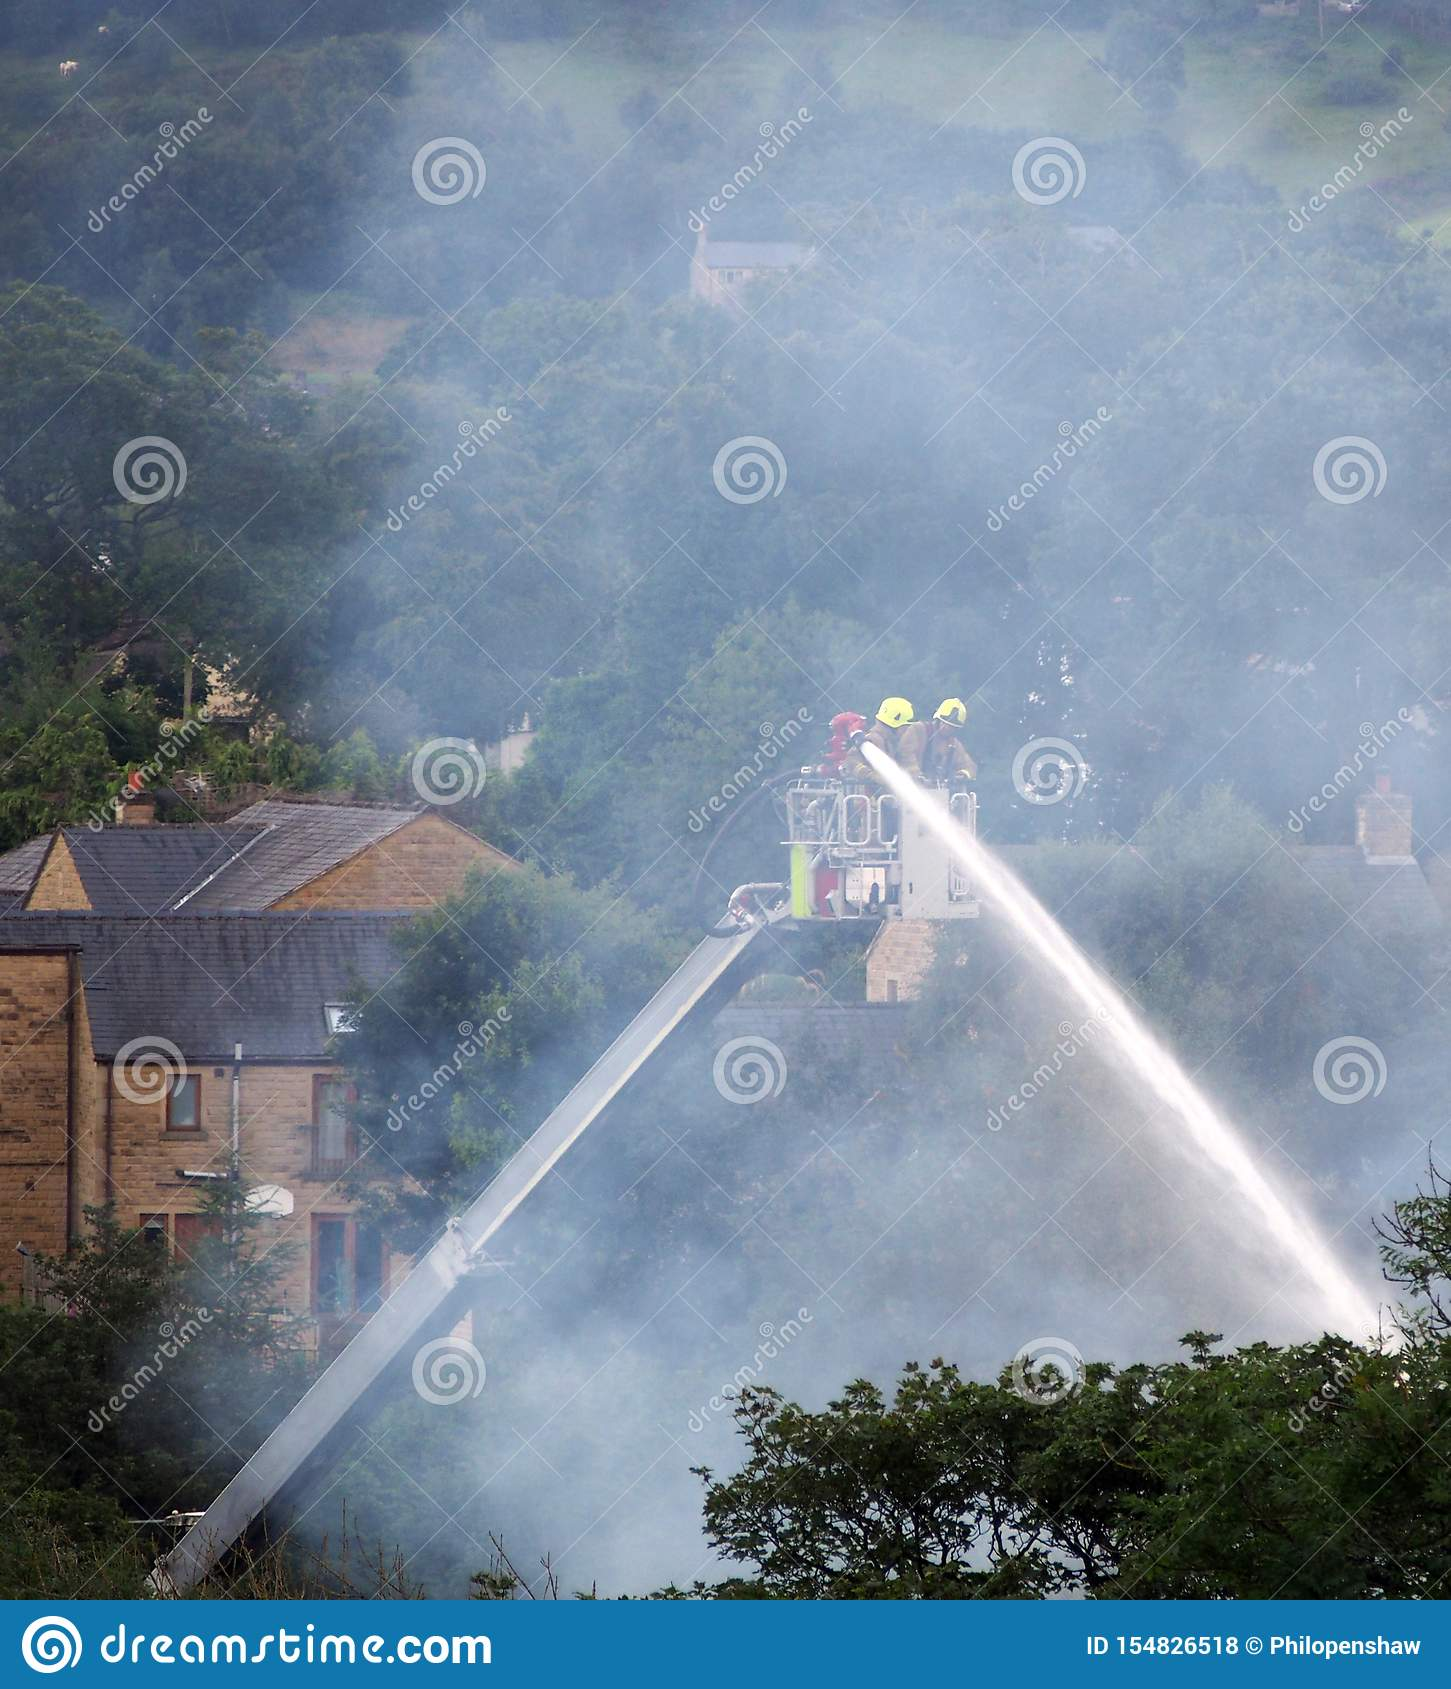 Firemen on an elevated platform putting out the fire at the former walkeys clogs mill in hebden bridge